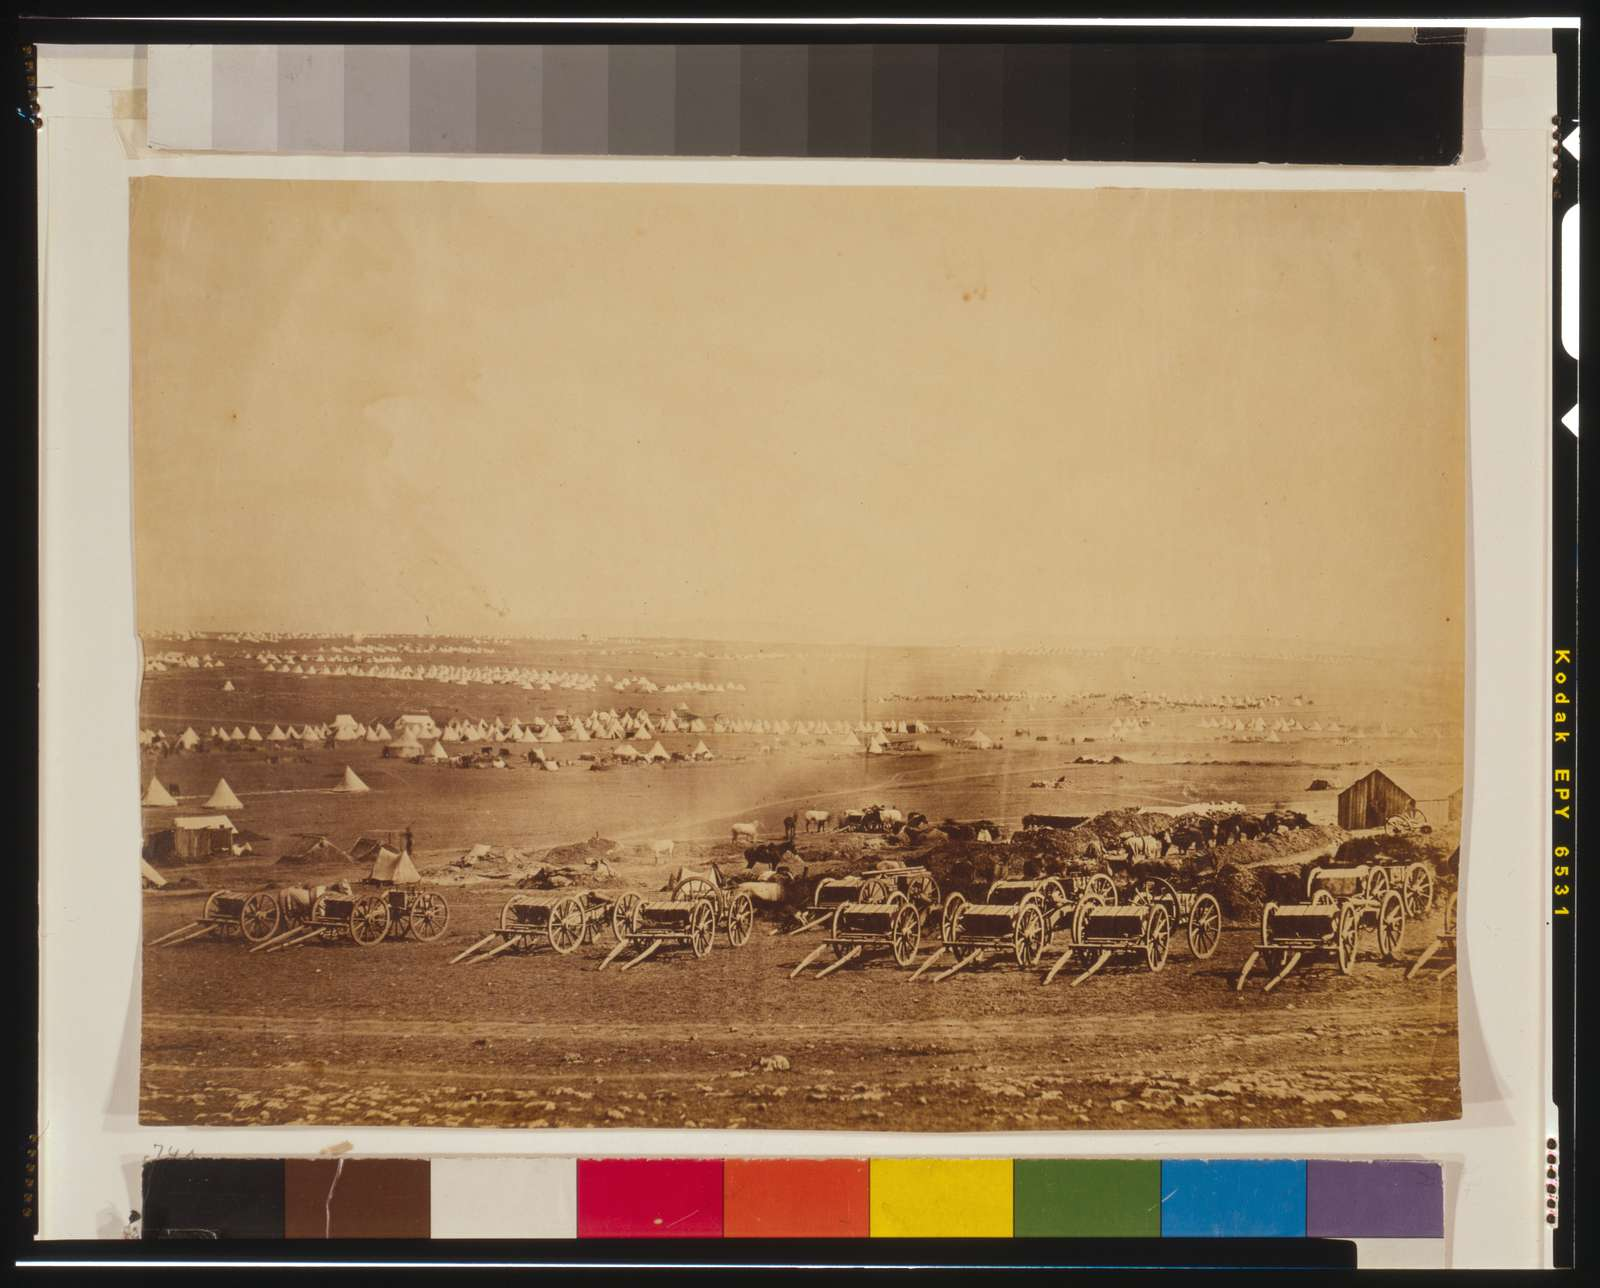 [Kamara Heights in the distance, artillery waggons in the foreground]